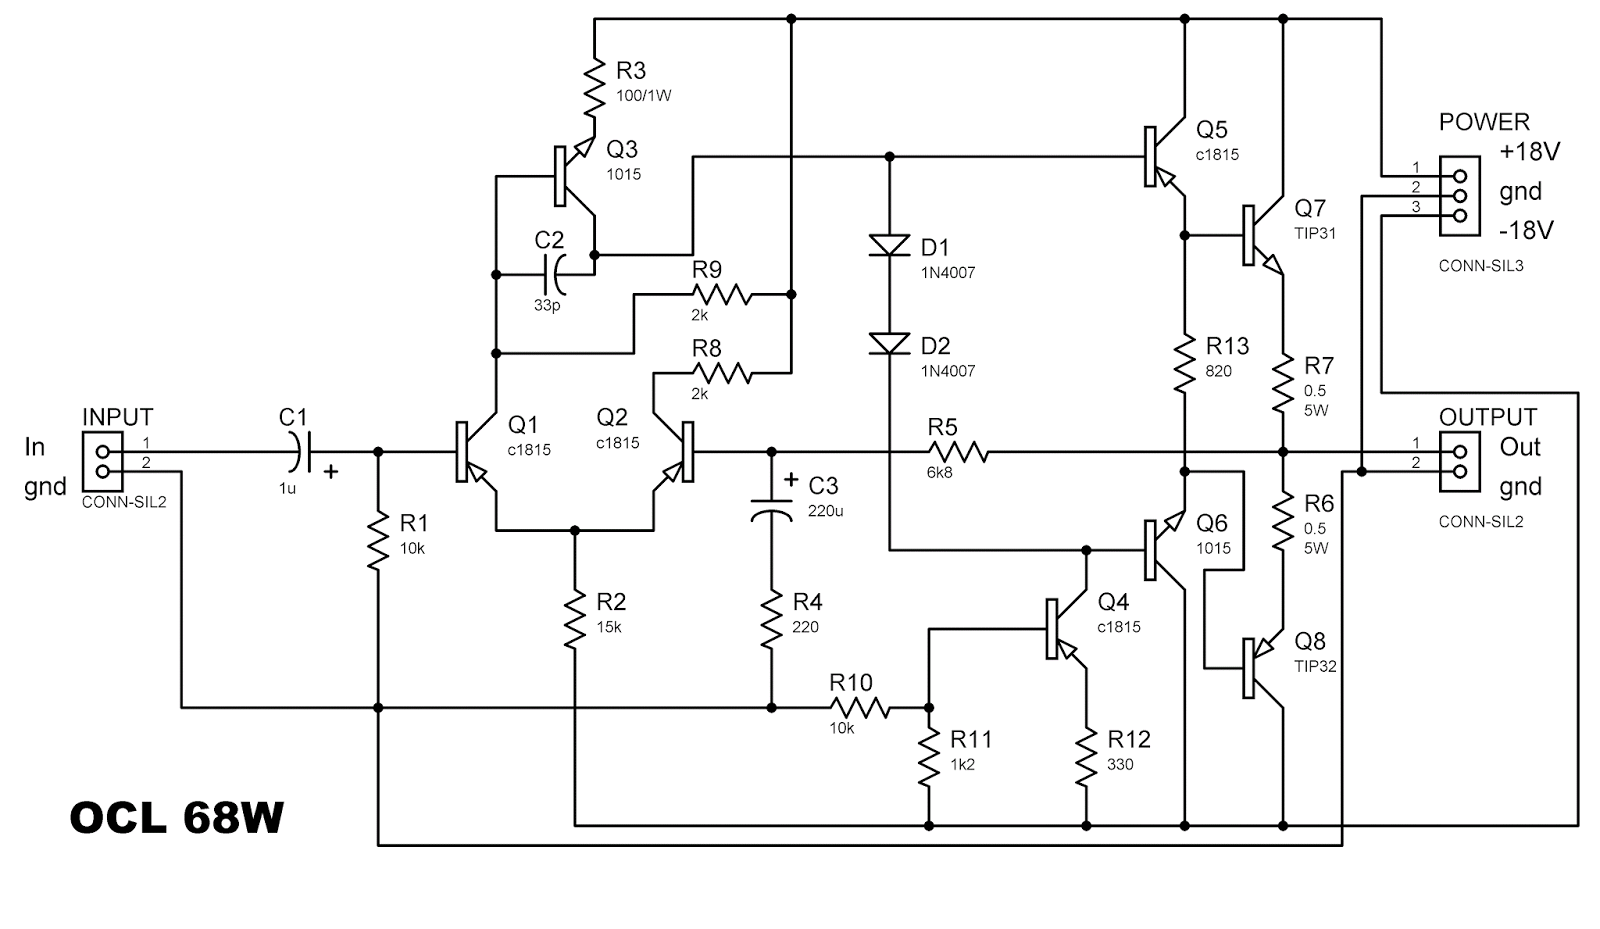 hight resolution of ocl 68 watt power amplifier in 2019 audio audio amplifier voltagemonitorcomparator amplifiercircuit circuit diagram